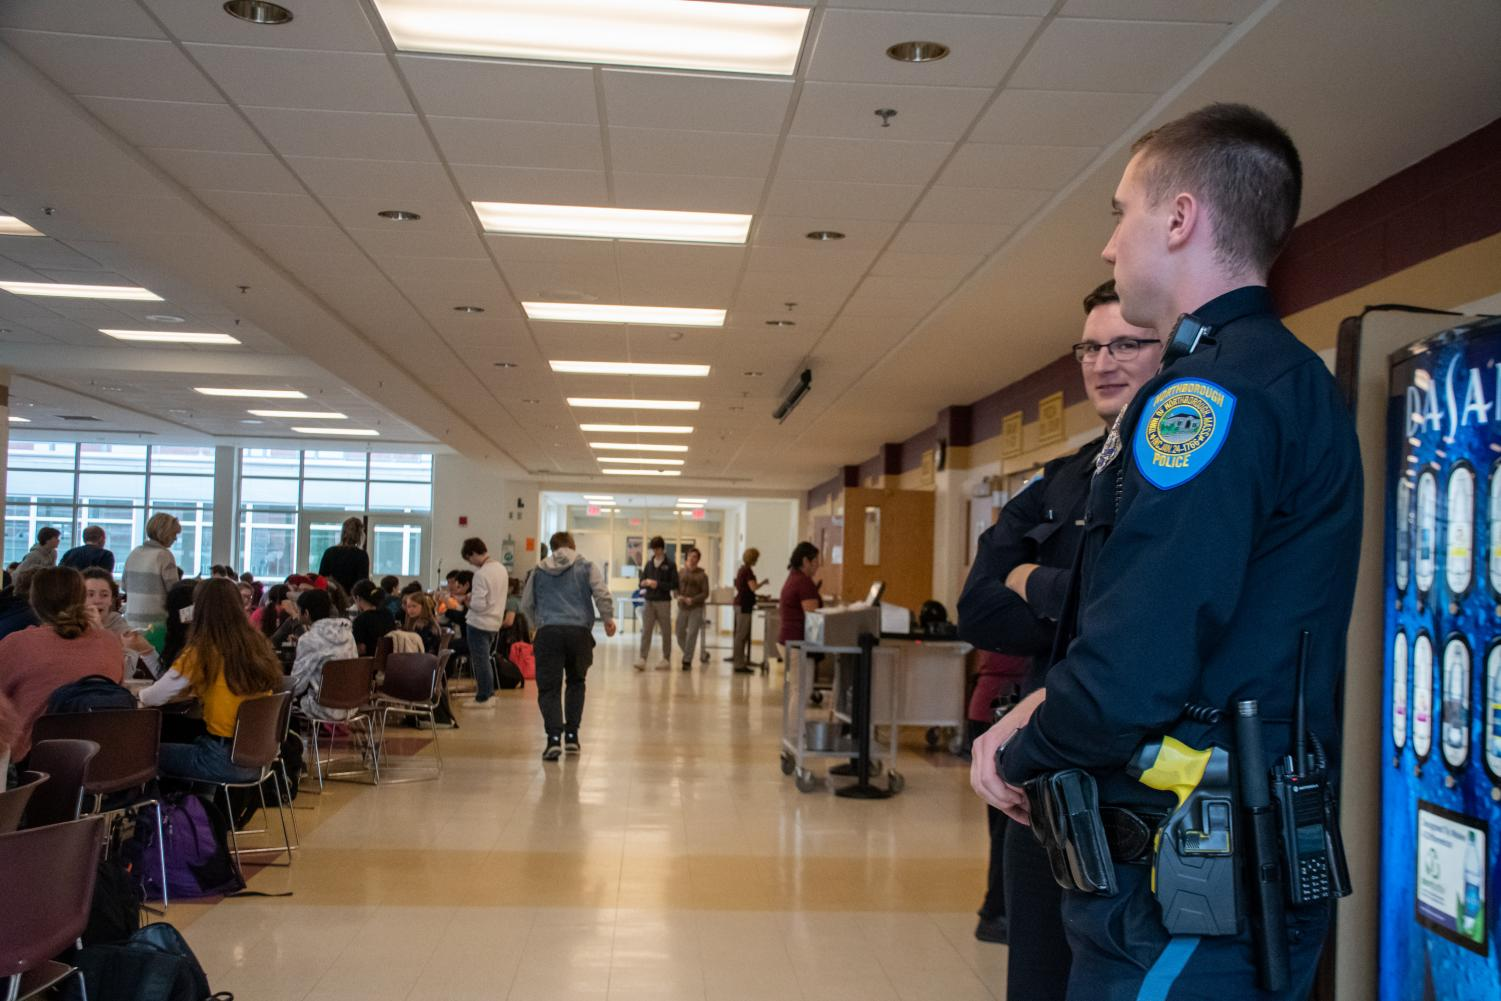 Police officers stand in the cafeteria on Dec. 10. There was an increased police presence at school after threatening statements were found written on bathroom walls.